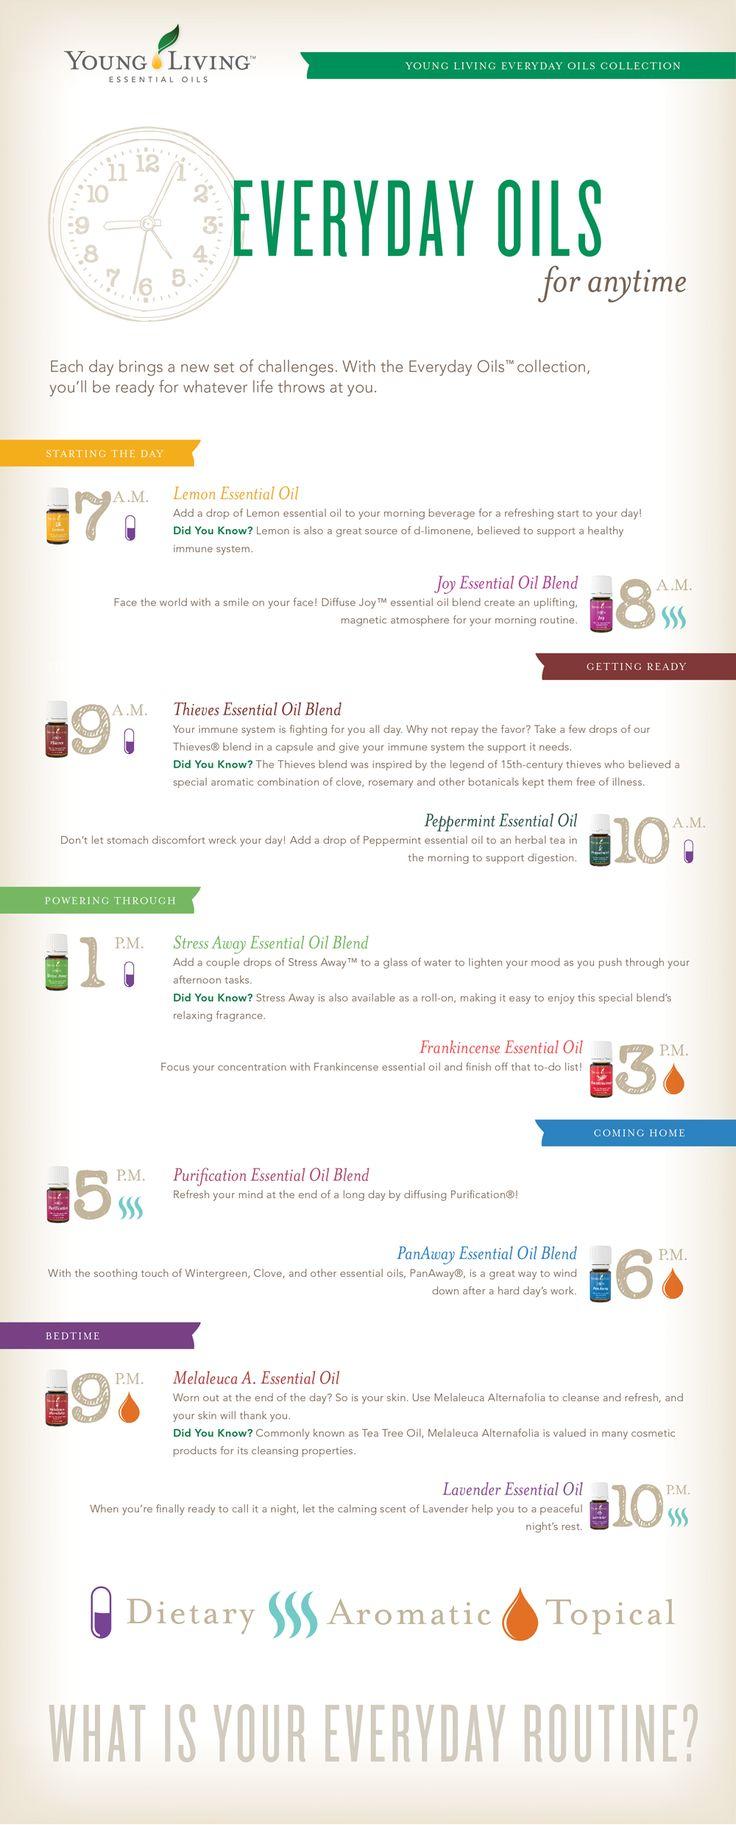 Young Living Essential Oils - to use Everyday! www.thewelloiledlife.com/premiumkit